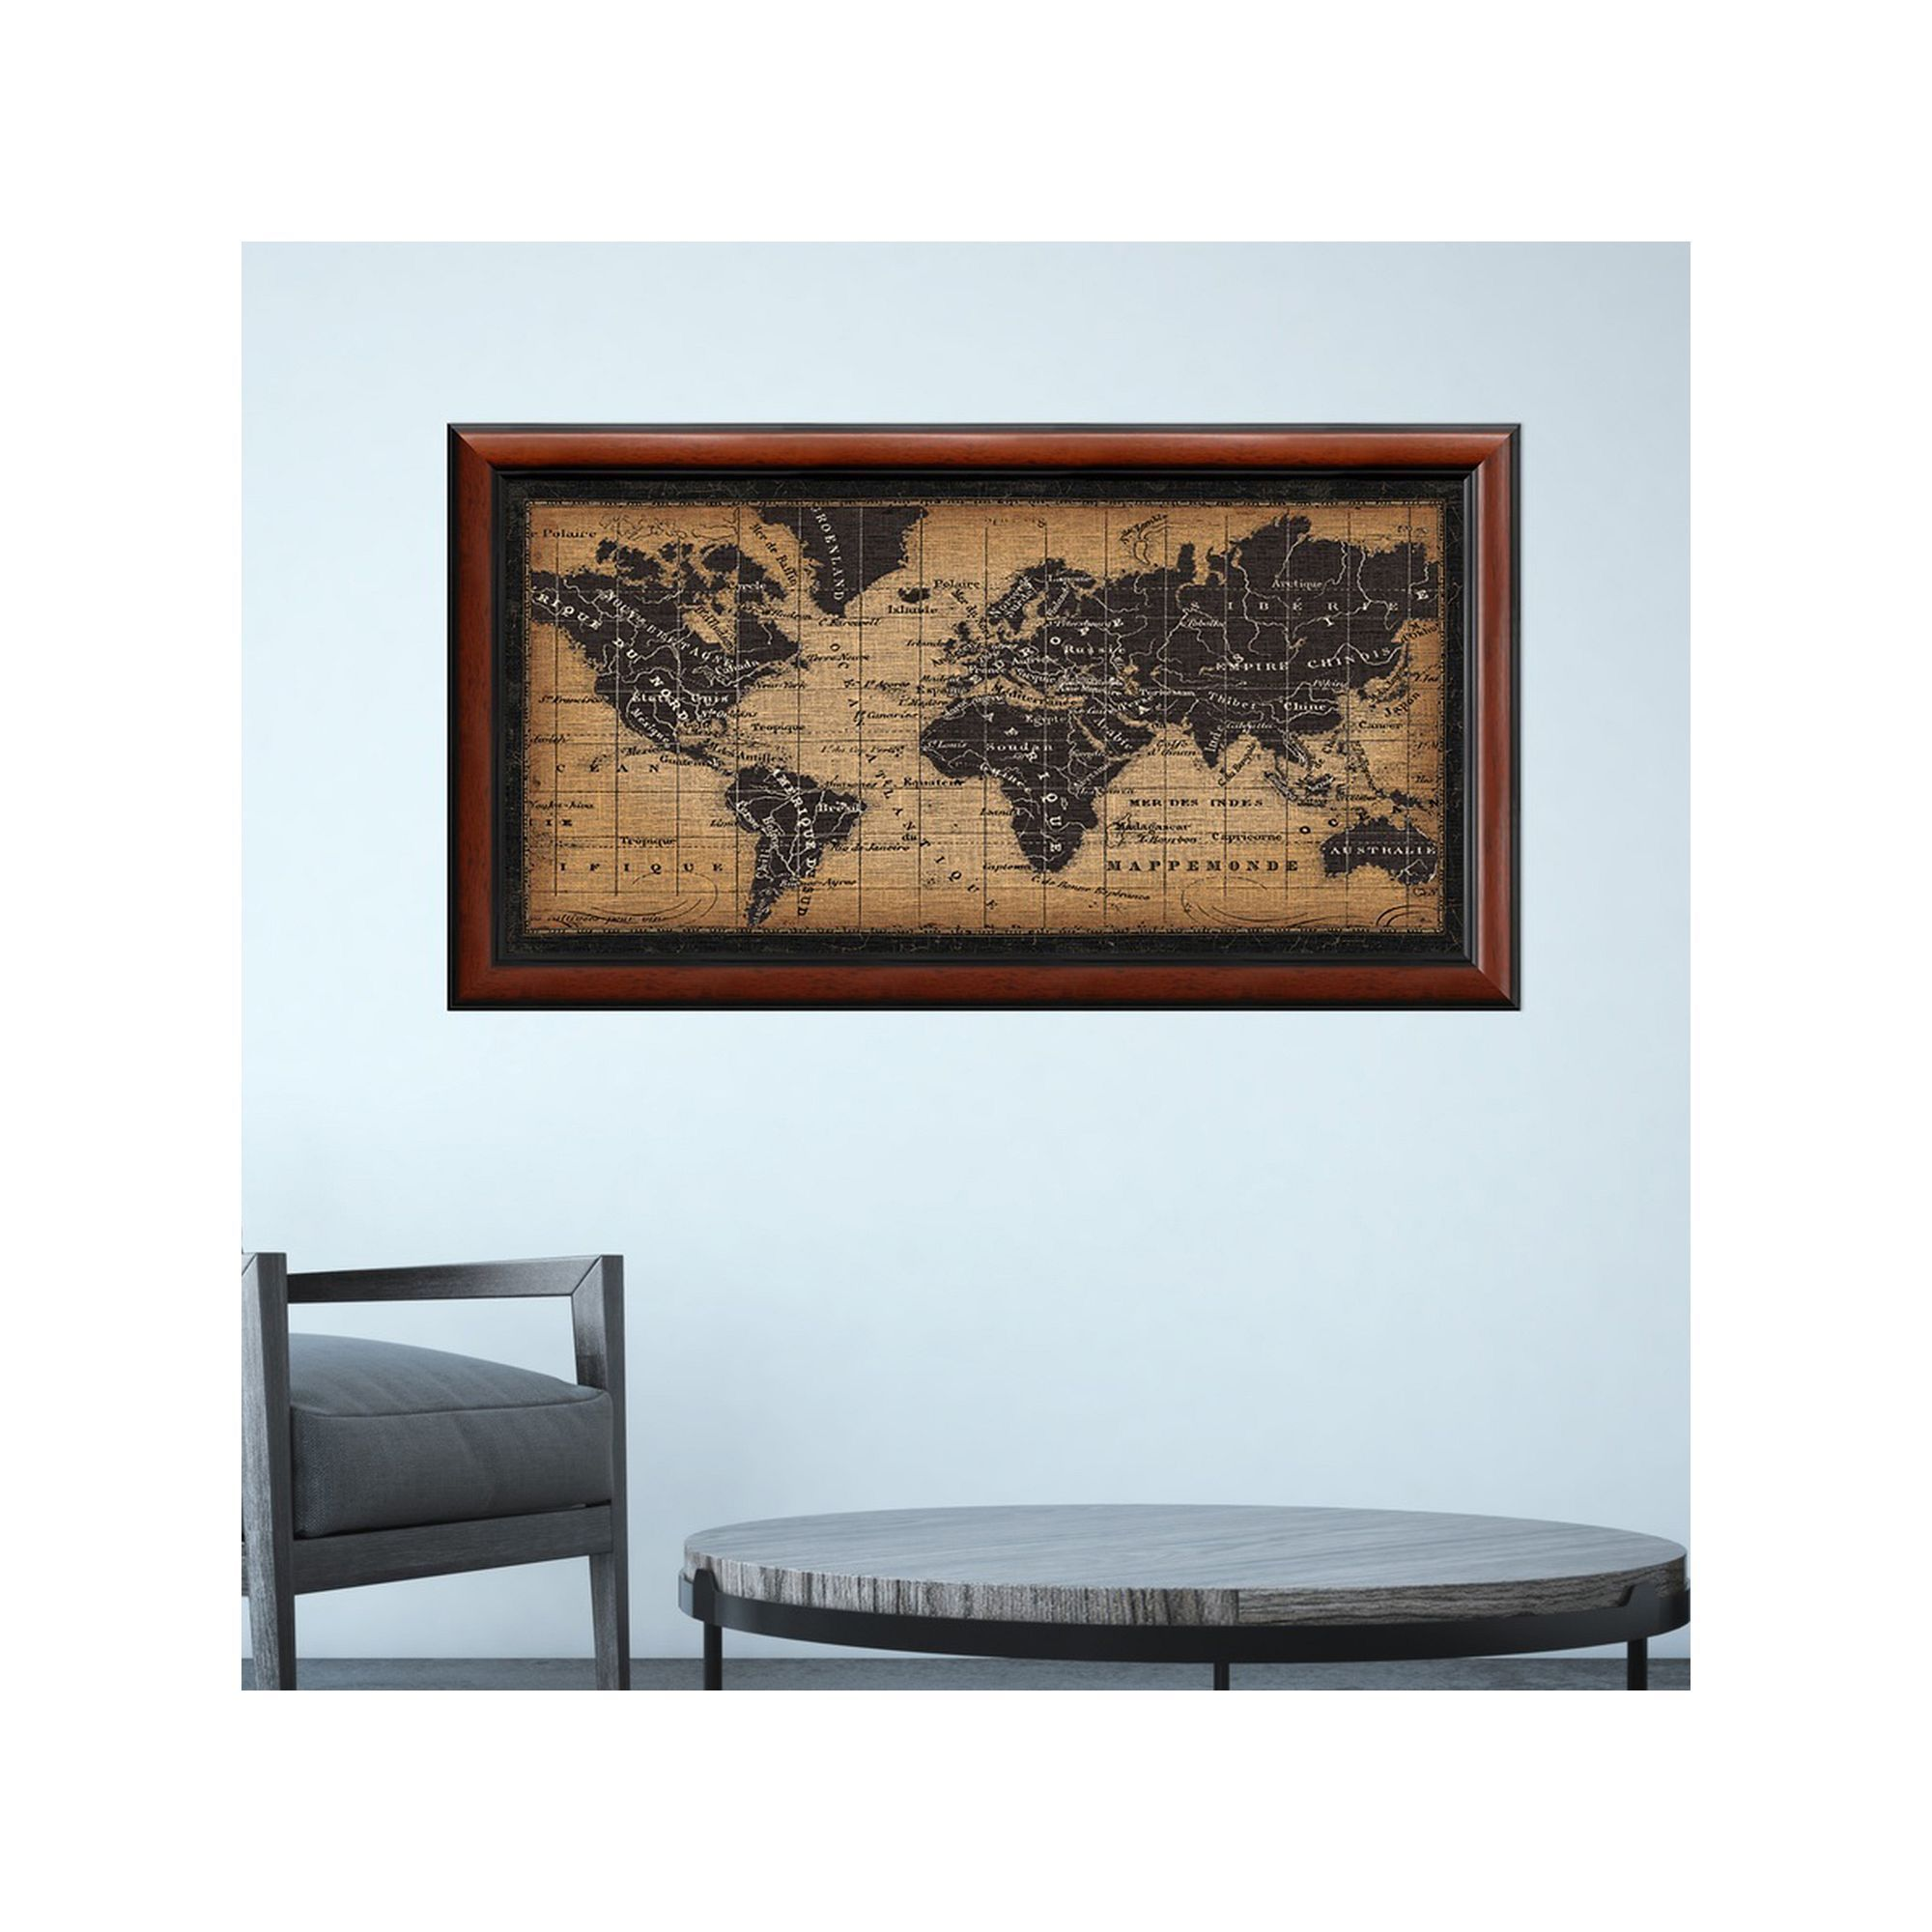 Amanti art old world map framed wall art multicolor world amanti art old world map framed wall art multicolor gumiabroncs Gallery